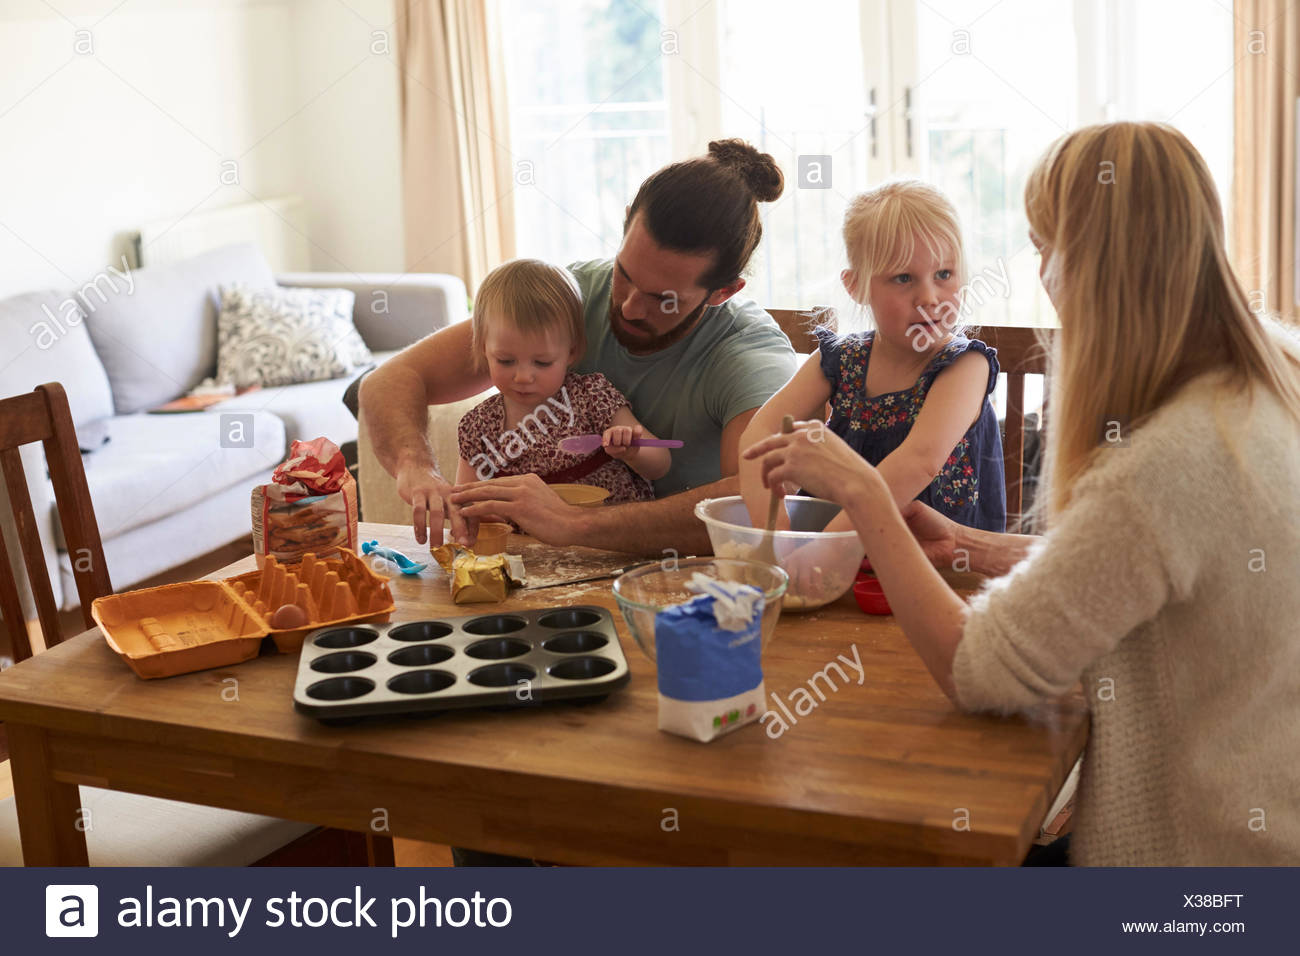 Family At Home Baking Cakes Together - Stock Image